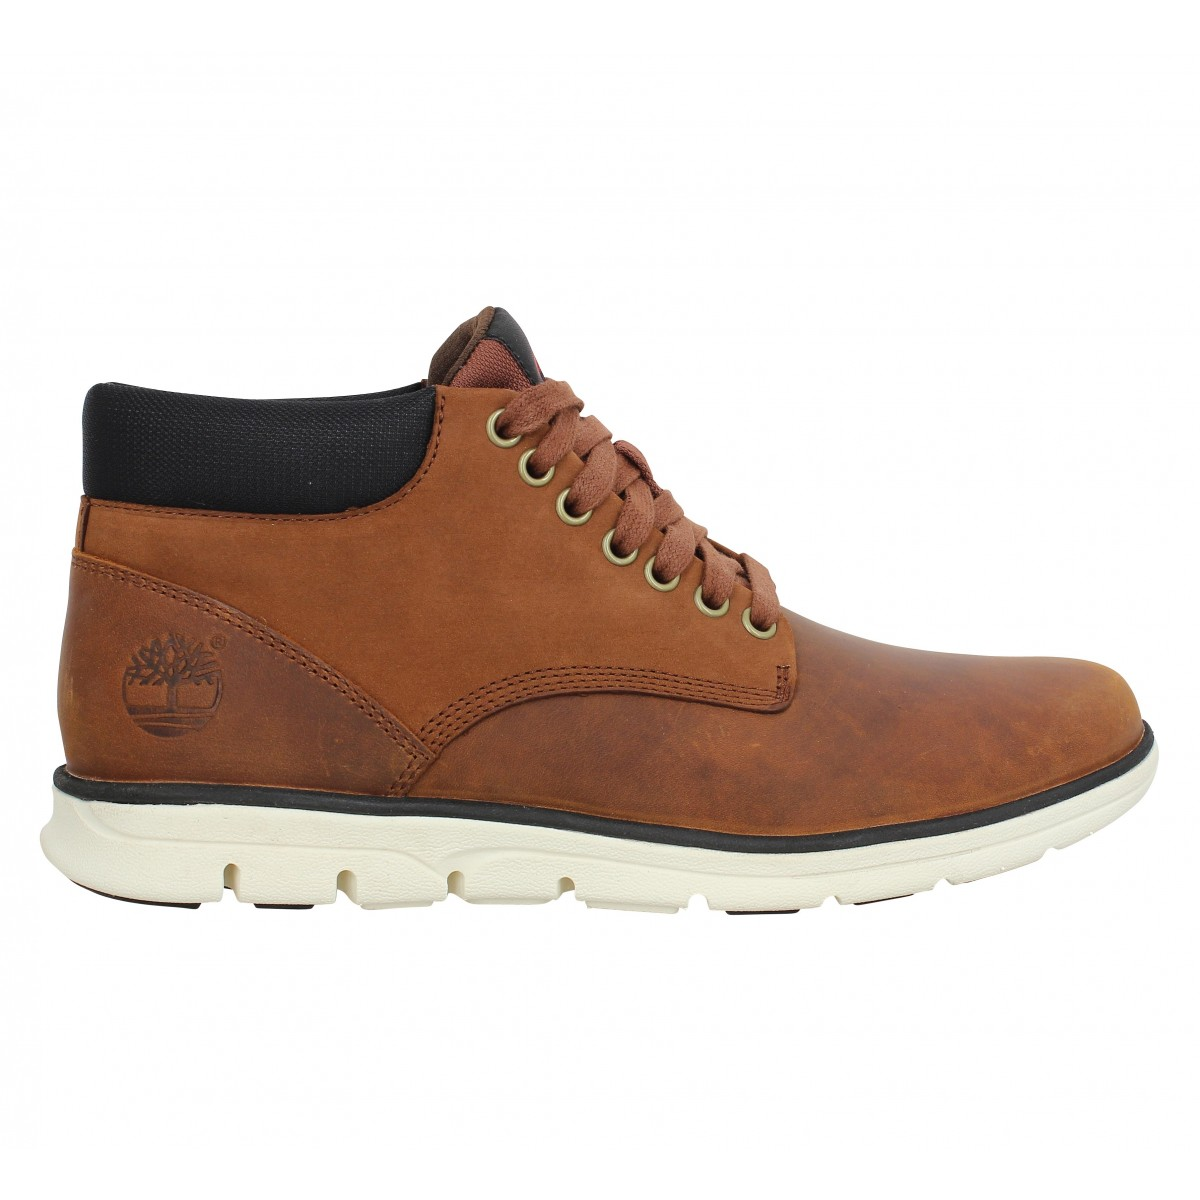 Timberland Chukka Cuir Marron Homme Fanny Chaussures